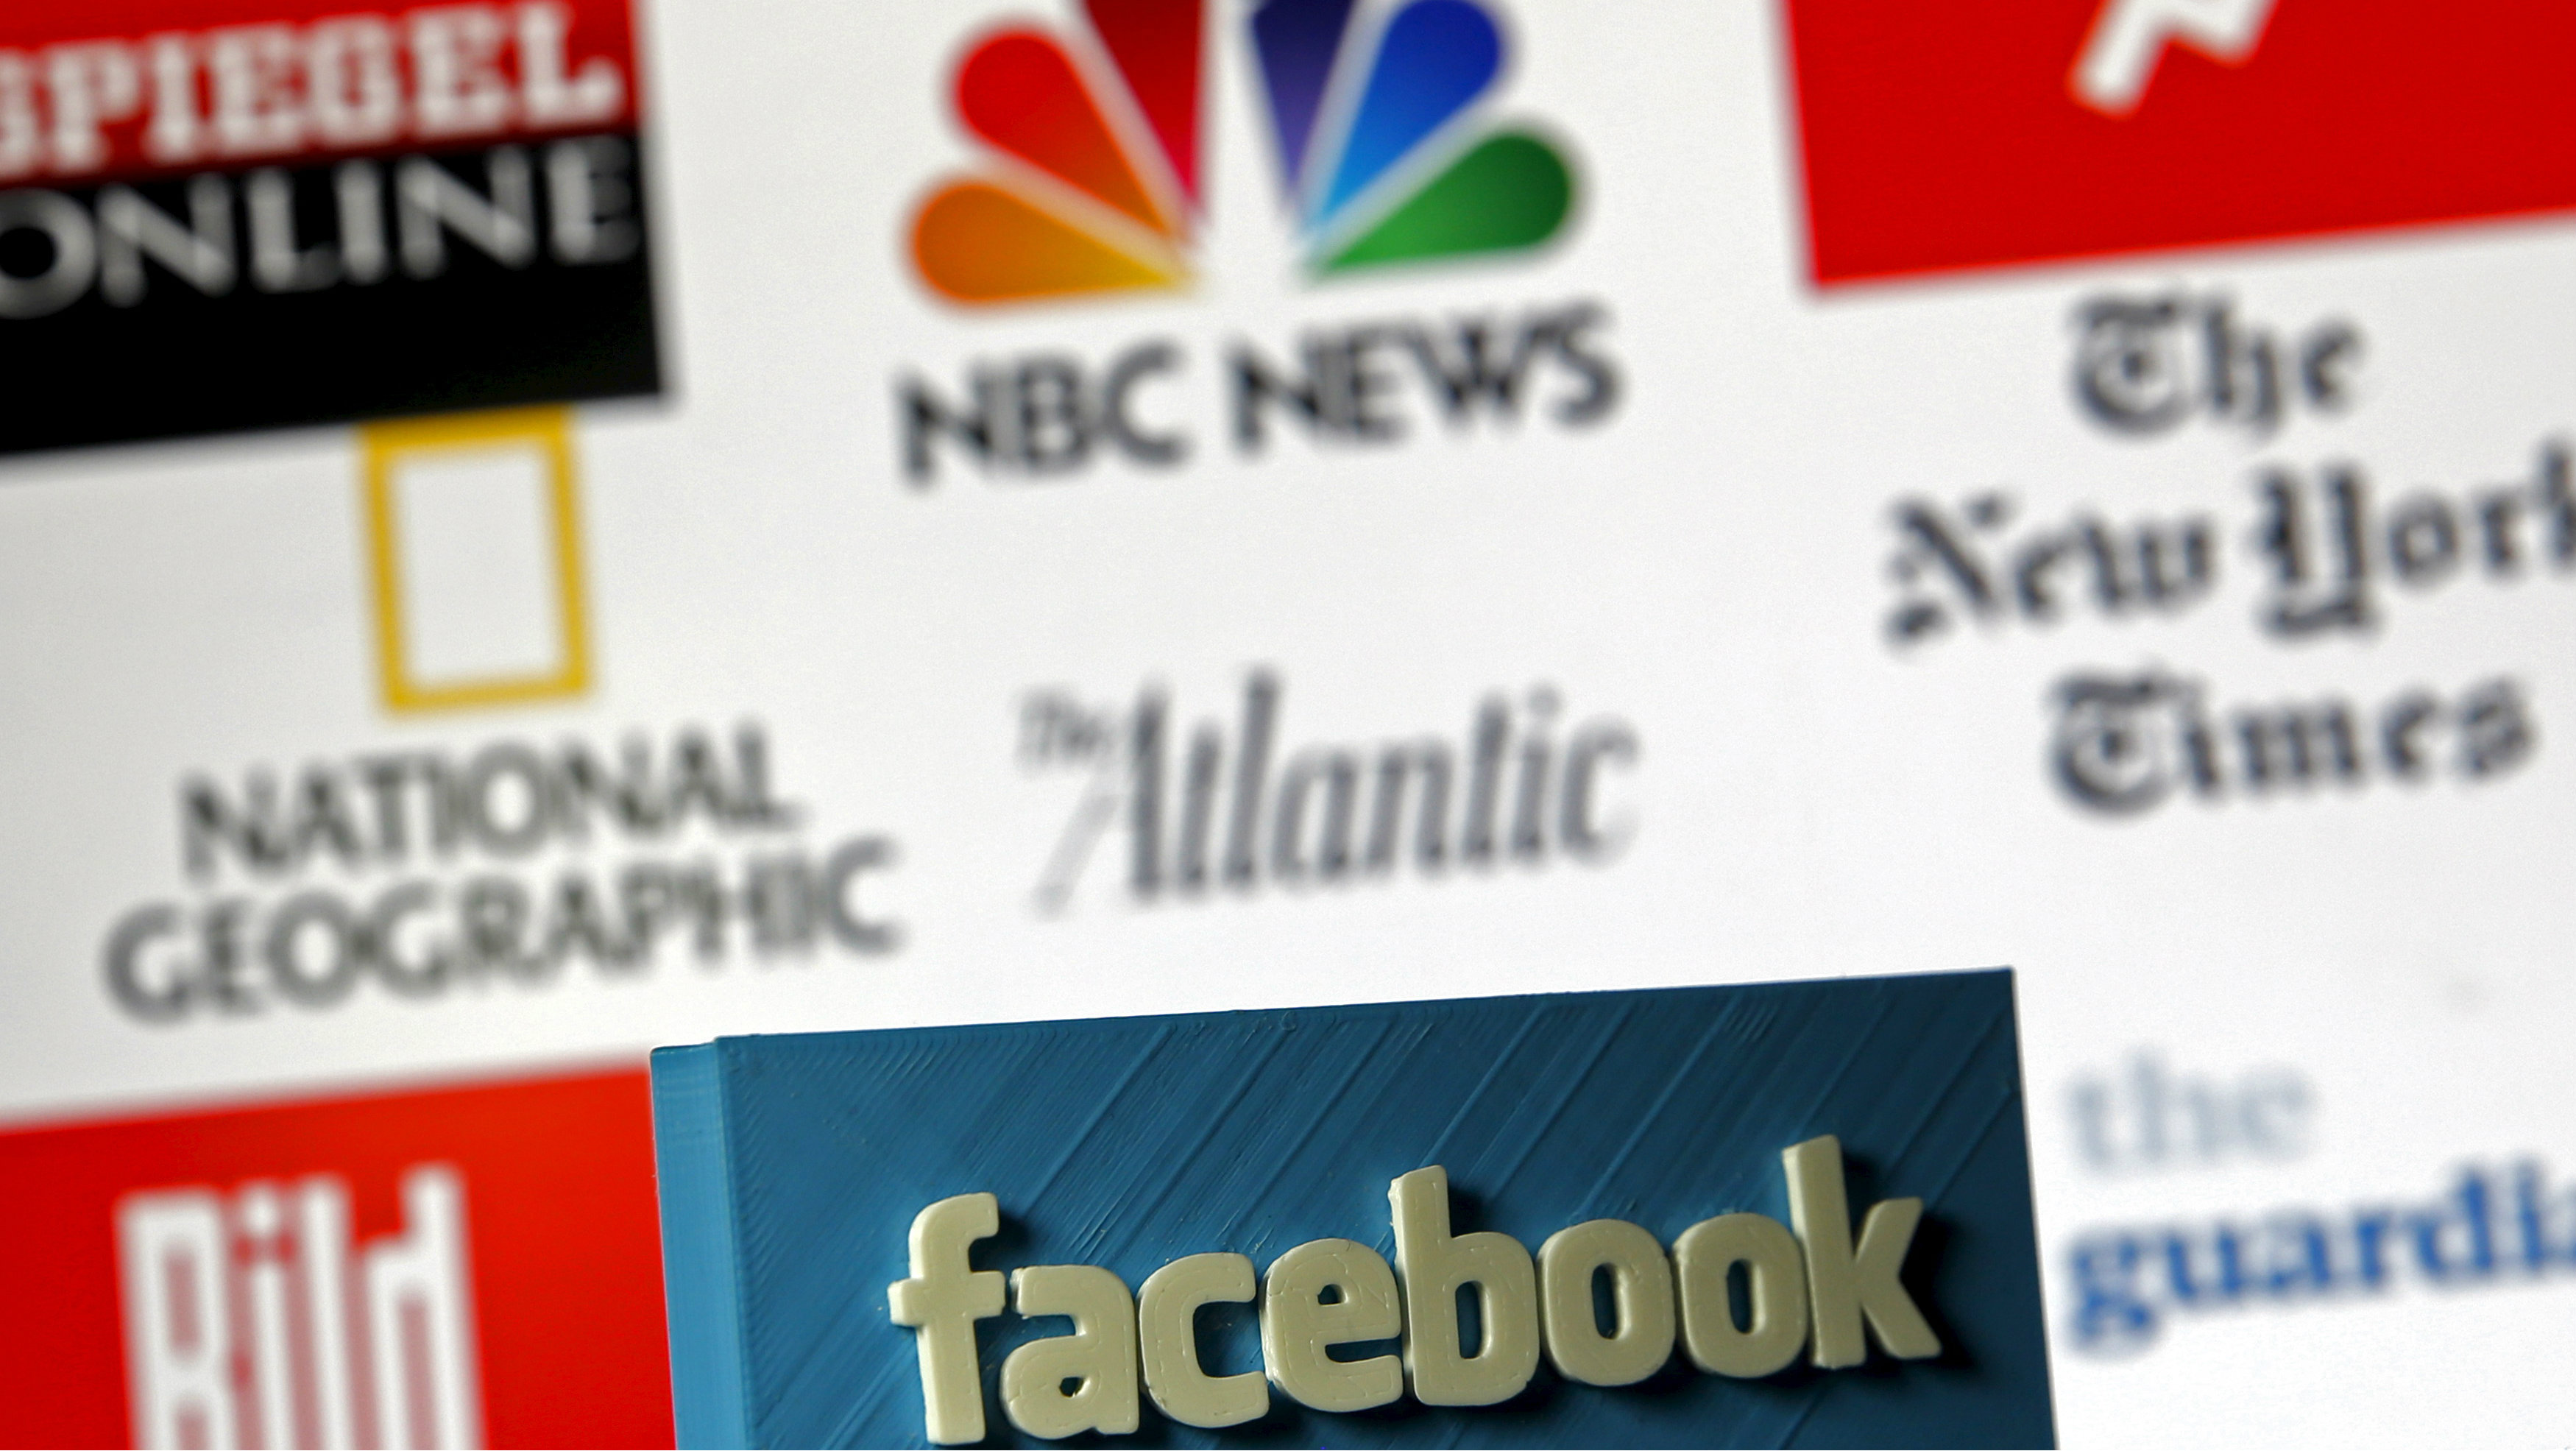 """A 3D-printed Facebook logo is seen in front of logos of news publishers it has tied up with, in this picture illustration made in Zenica, Bosnia and Herzegovina on May 15, 2015. Facebook Inc tied up with nine news publishers to launch """"Instant Articles"""" that will let them publish articles directly to the social network's mobile news feeds. Instant Articles will let stories load more than 10 times faster than standard mobile web articles and will include content from publishers such as the New York Times, BuzzFeed and National Geographic, Facebook said in a blog post on its website. The other launch partners for Instant Articles are NBC, The Atlantic, The Guardian, BBC News, Spiegel and Bild, Facebook said. REUTERS/Dado Ruvic"""